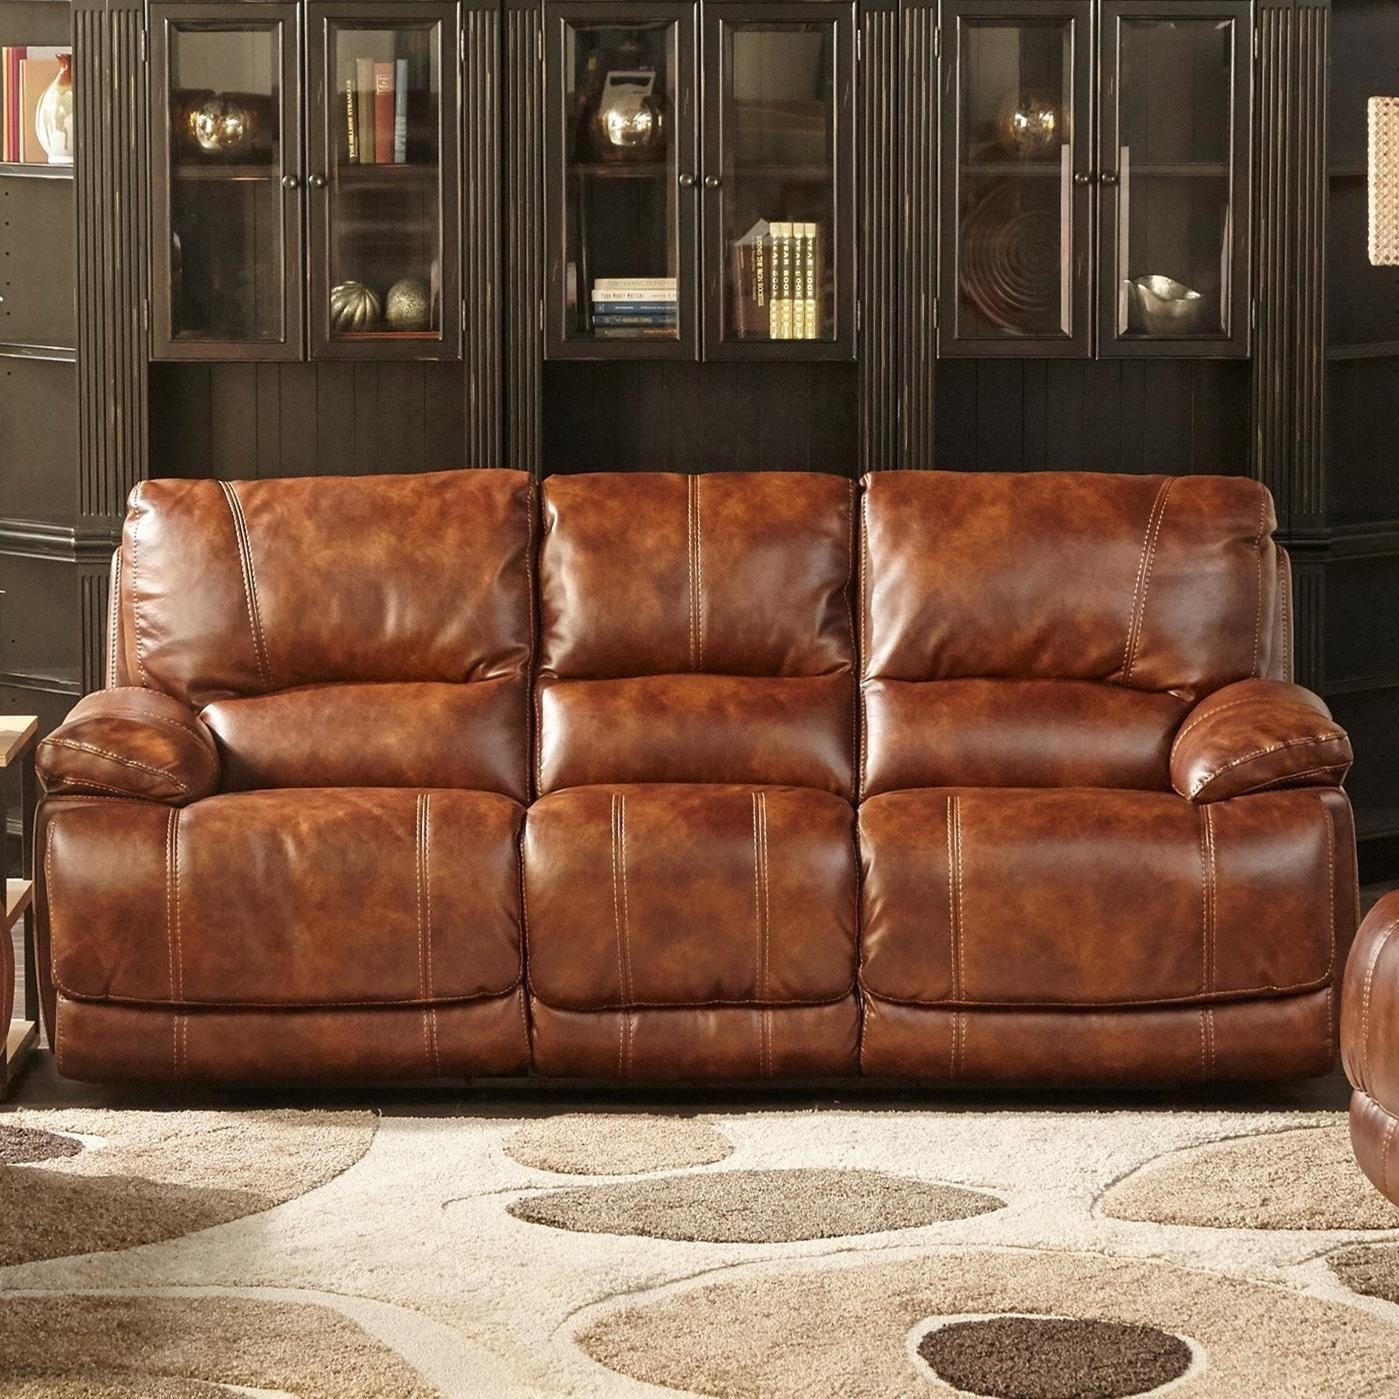 Cheers Sofa 5185M Dual Power Motion Sofa With Power Headrests With Cheers Sofas (View 16 of 20)